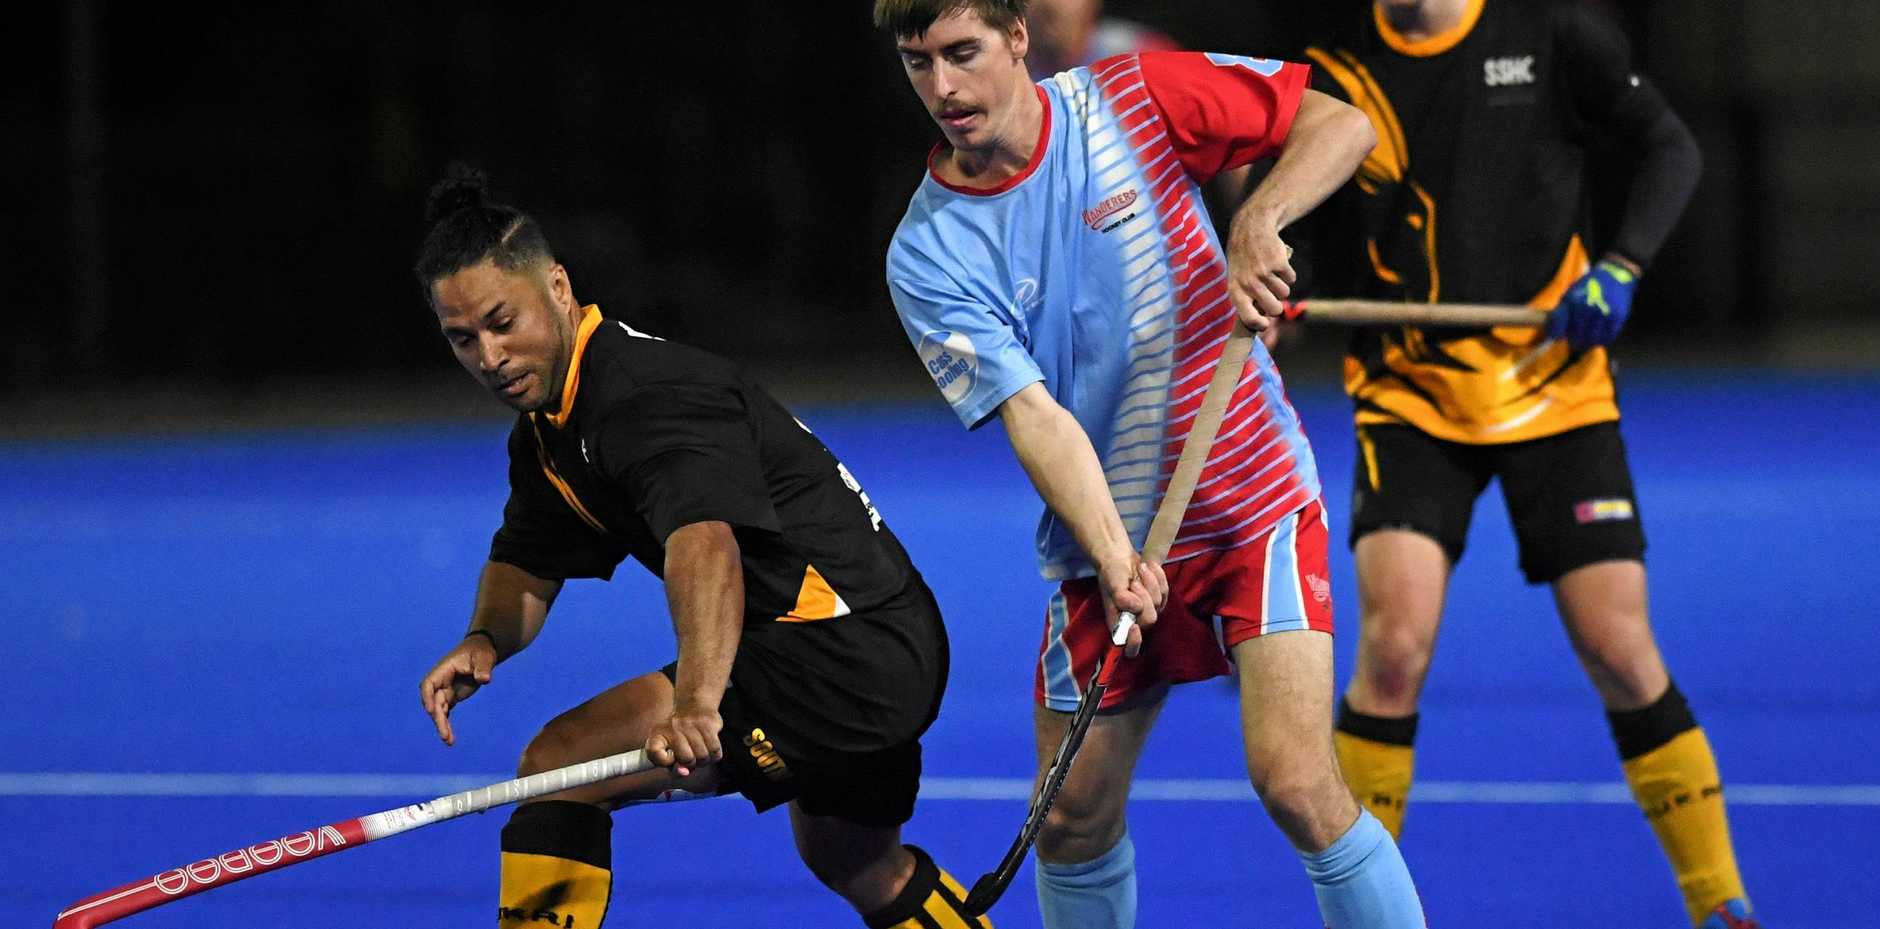 Hockey, Souths, Mike Elton and Wanderers Clinton McKay